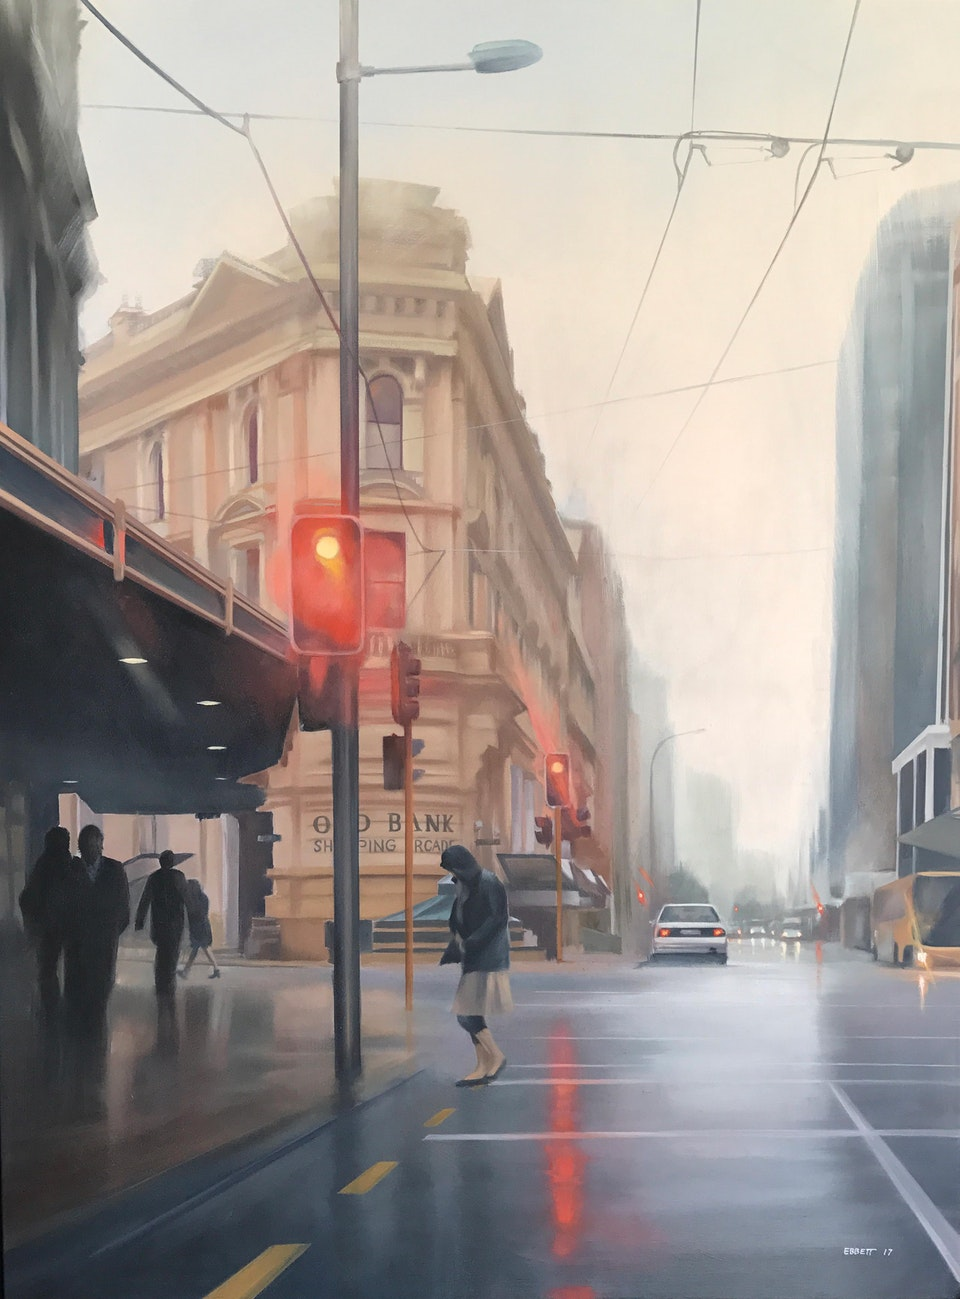 Old Bank Shopping Arcade - Old Bank Shopping Arcade 1010mm x 760mm  oil on canvas 2017